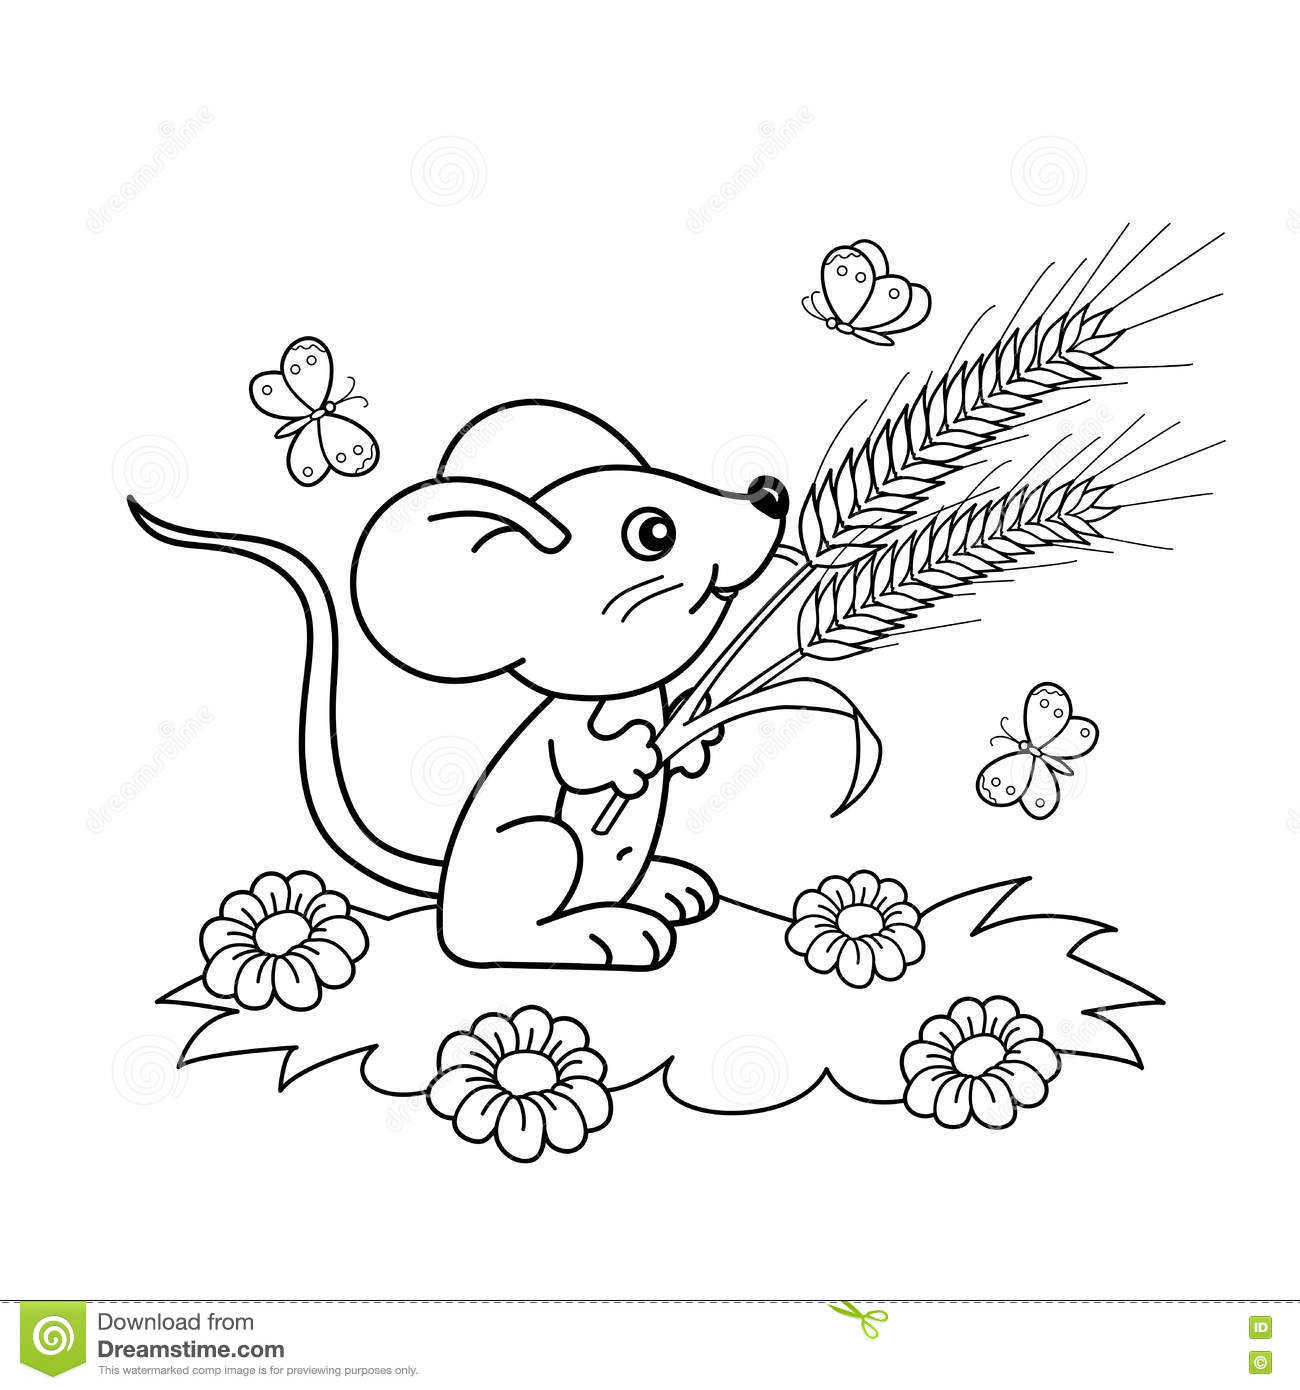 Coloring Page Outline Of Cartoon Little Mouse With Spikelets In The